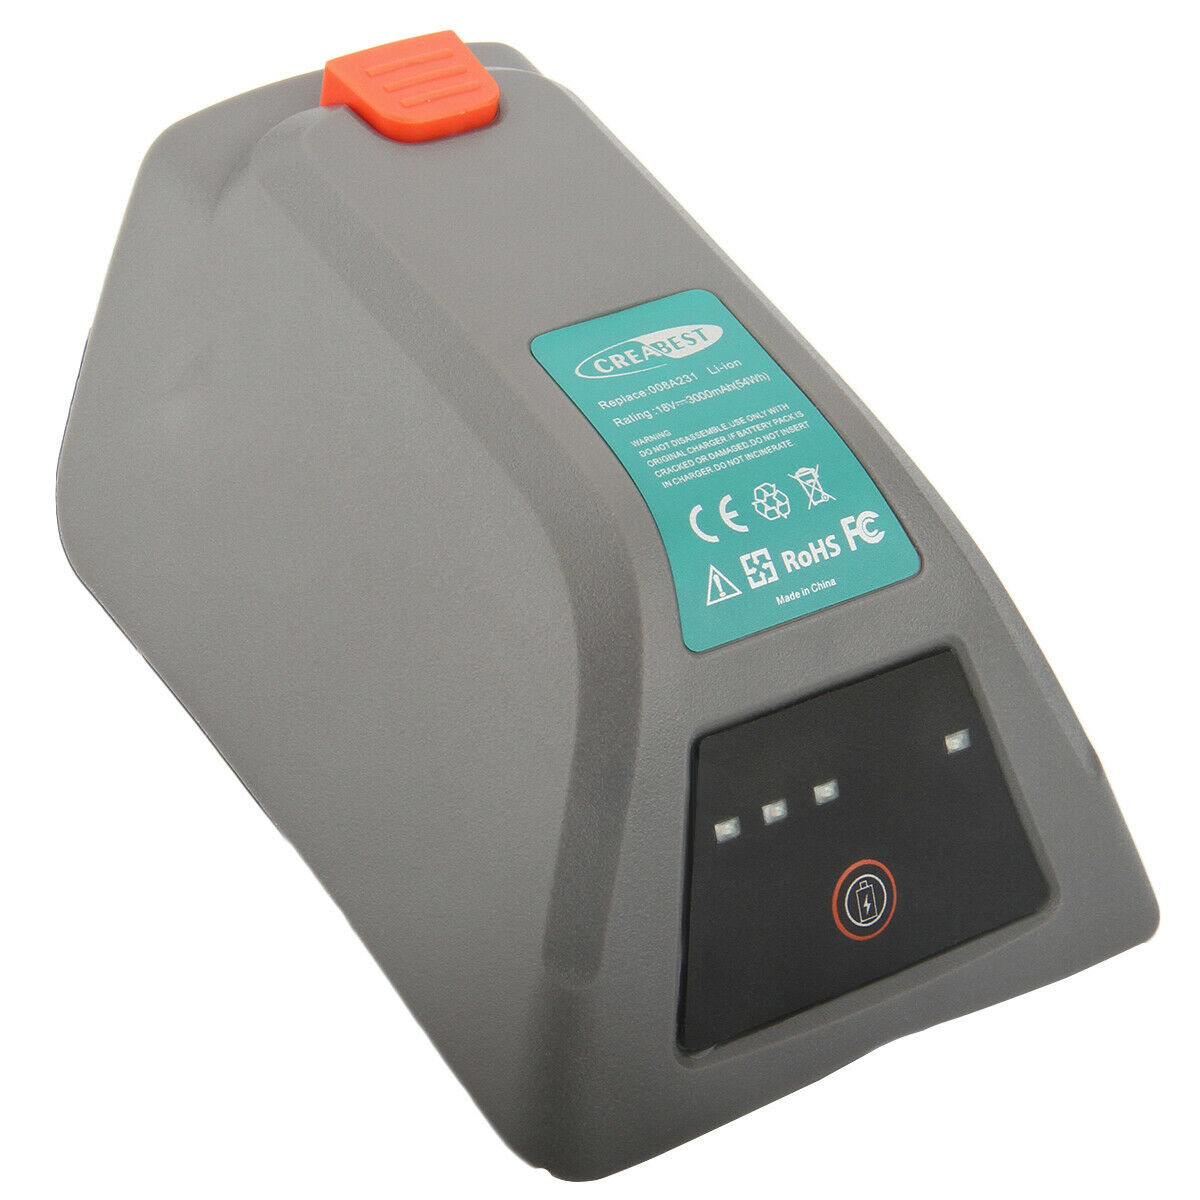 008A231 08025-00.900.07 for Gardena (3Ah) batteria compatibile